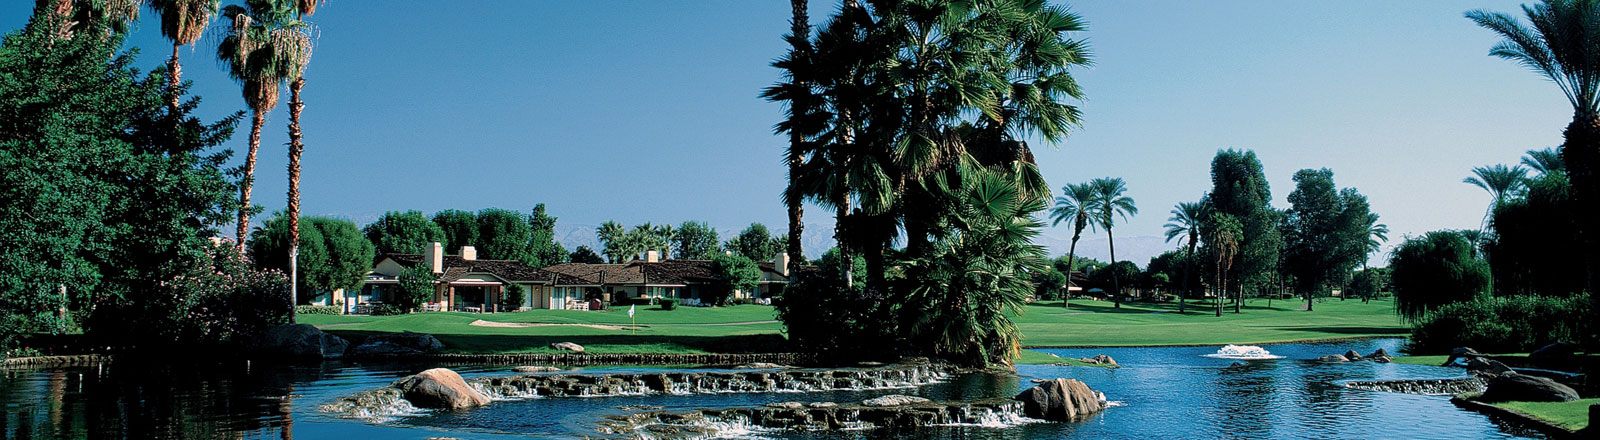 California - Palm Springs Header